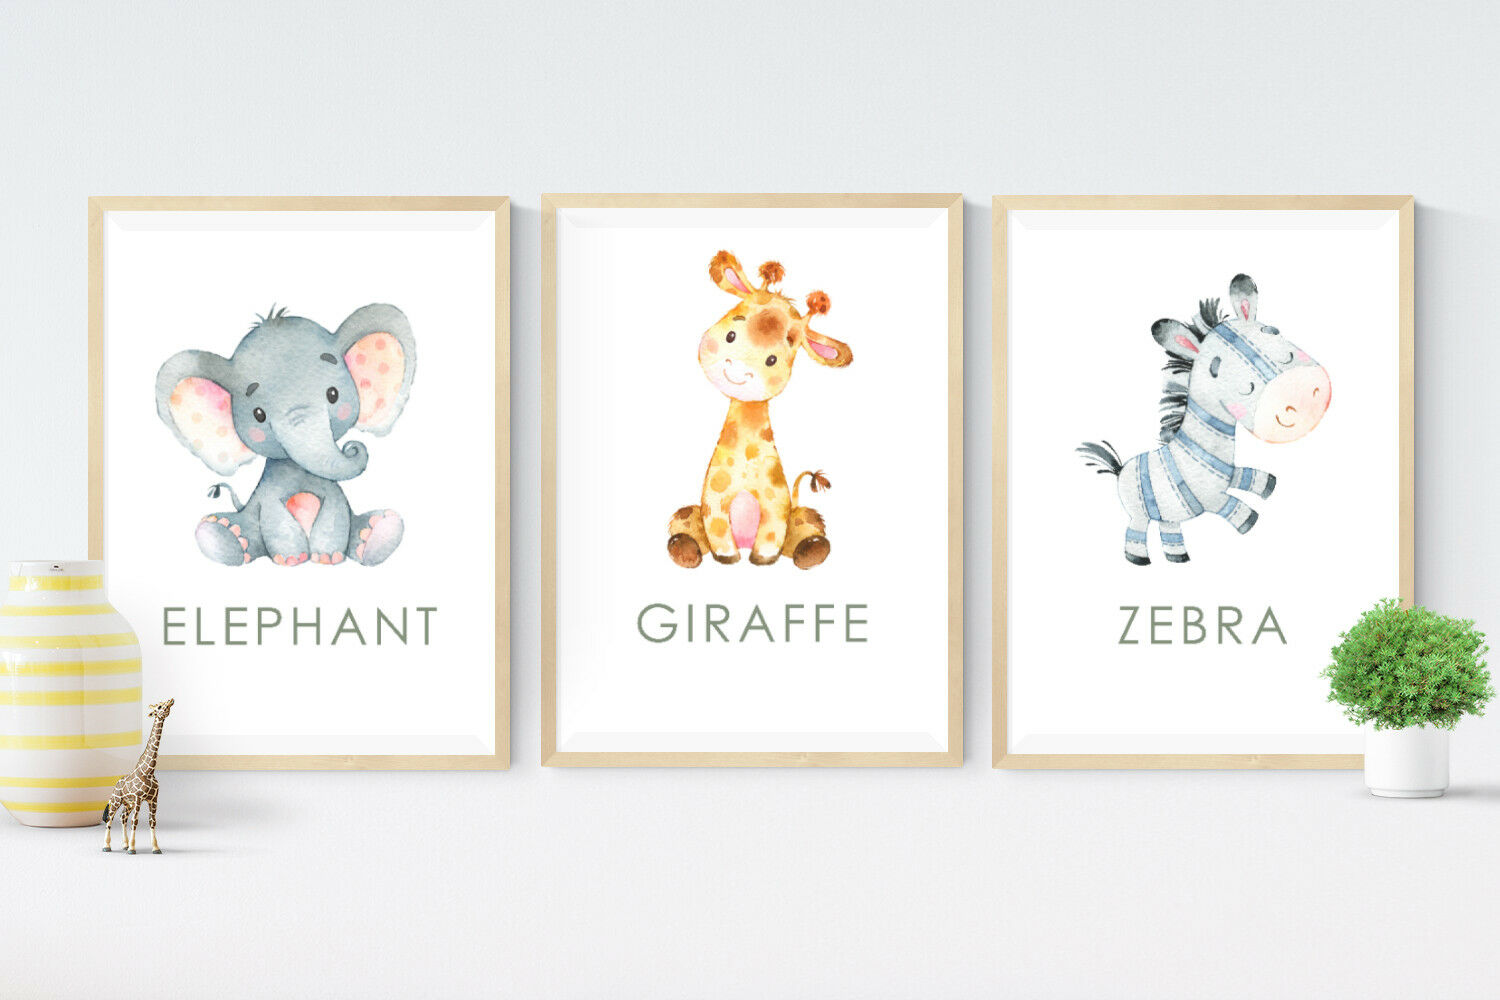 3 Baby Jungle Safari Animal Prints Nursery Gift Room Wall Art Decor Pictures 1 Of 2free Shipping See More